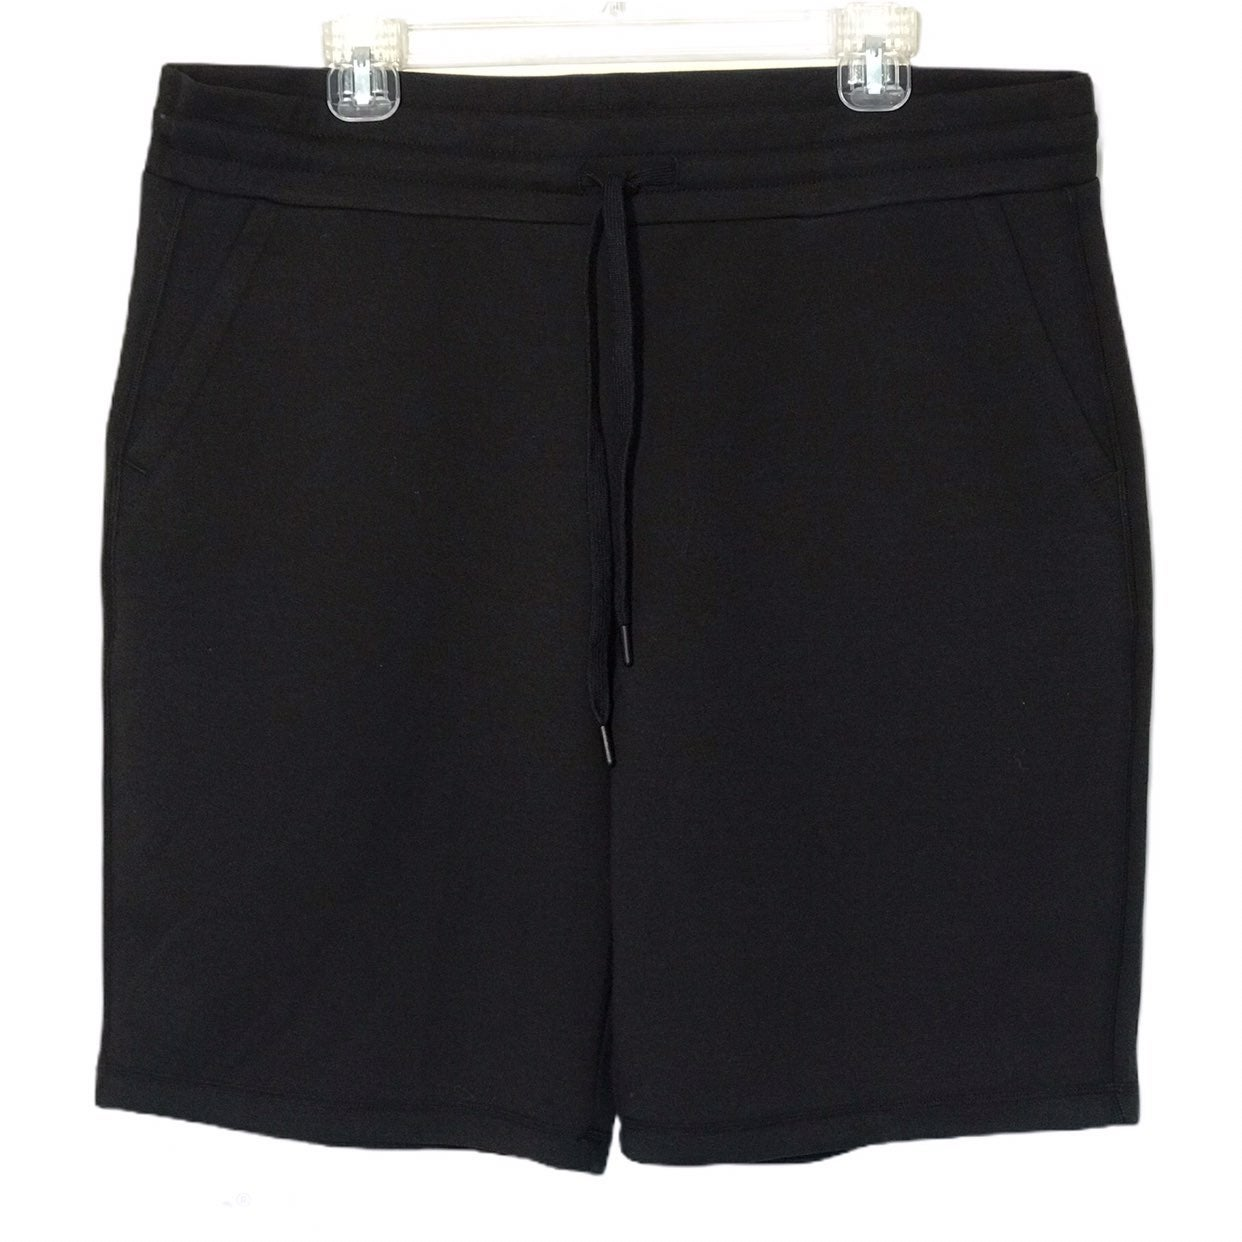 32 Degrees Tech Black Stormy Night Short